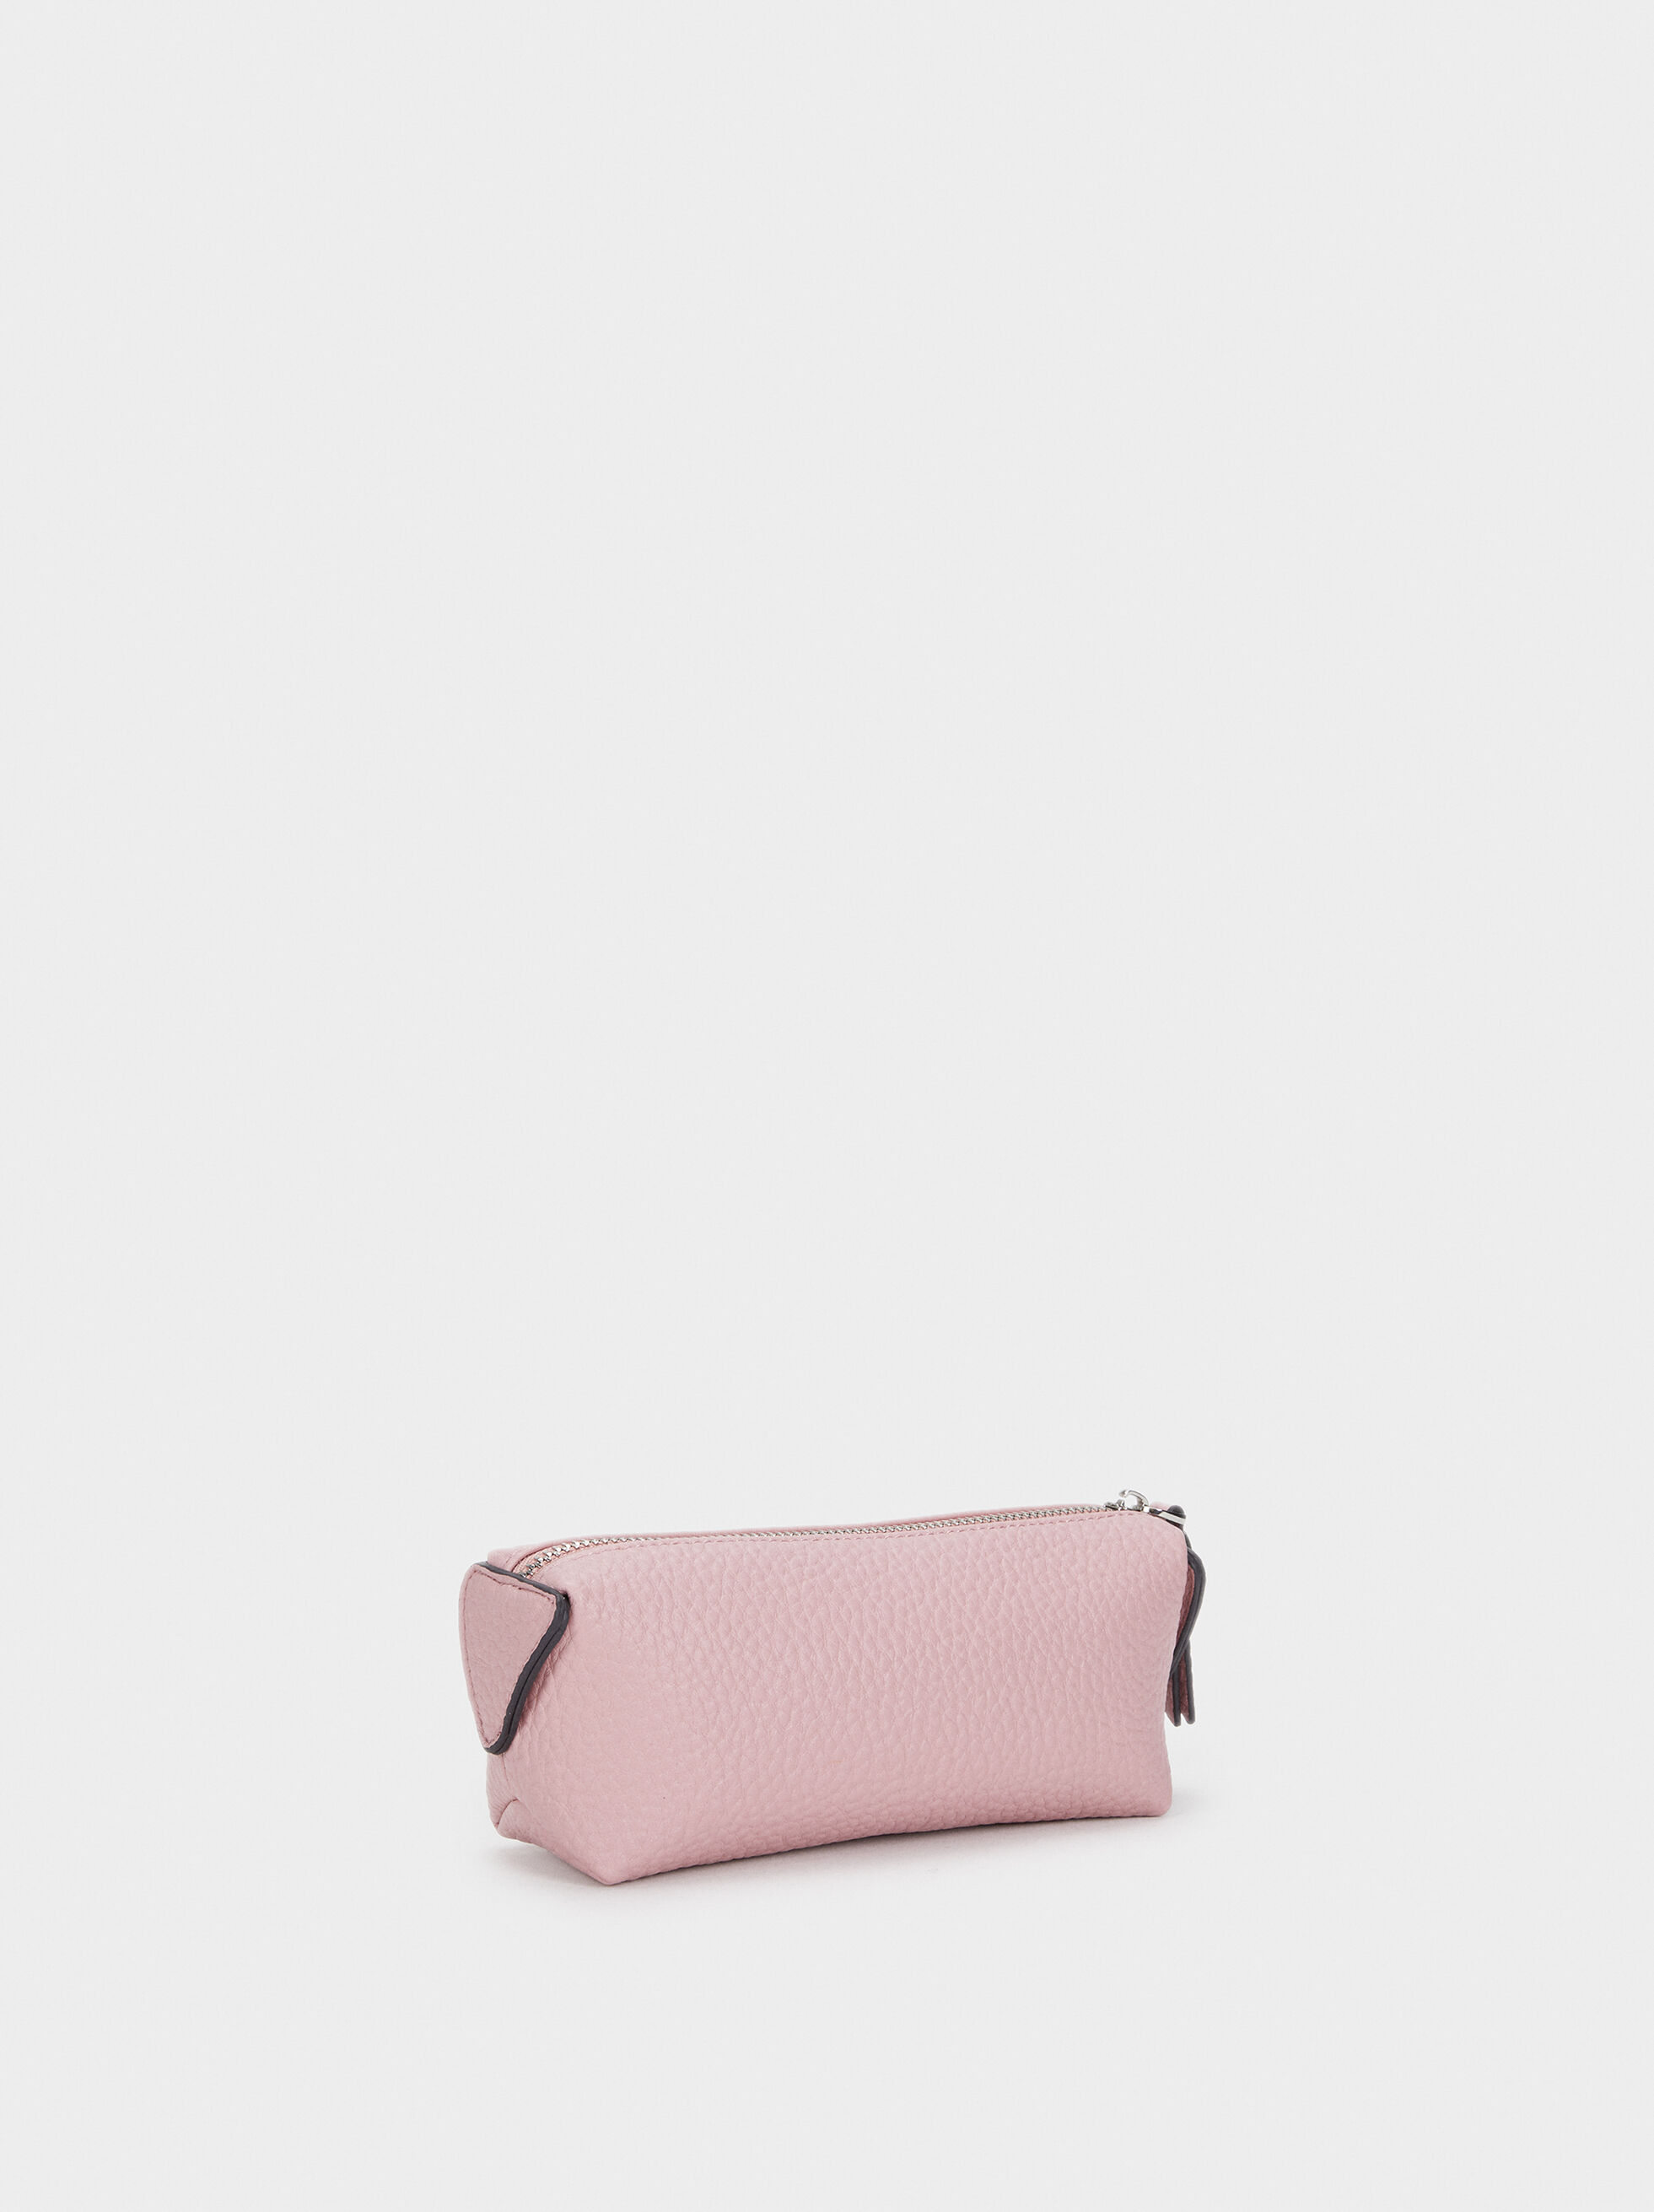 Textured Pencil Case, Pink, hi-res